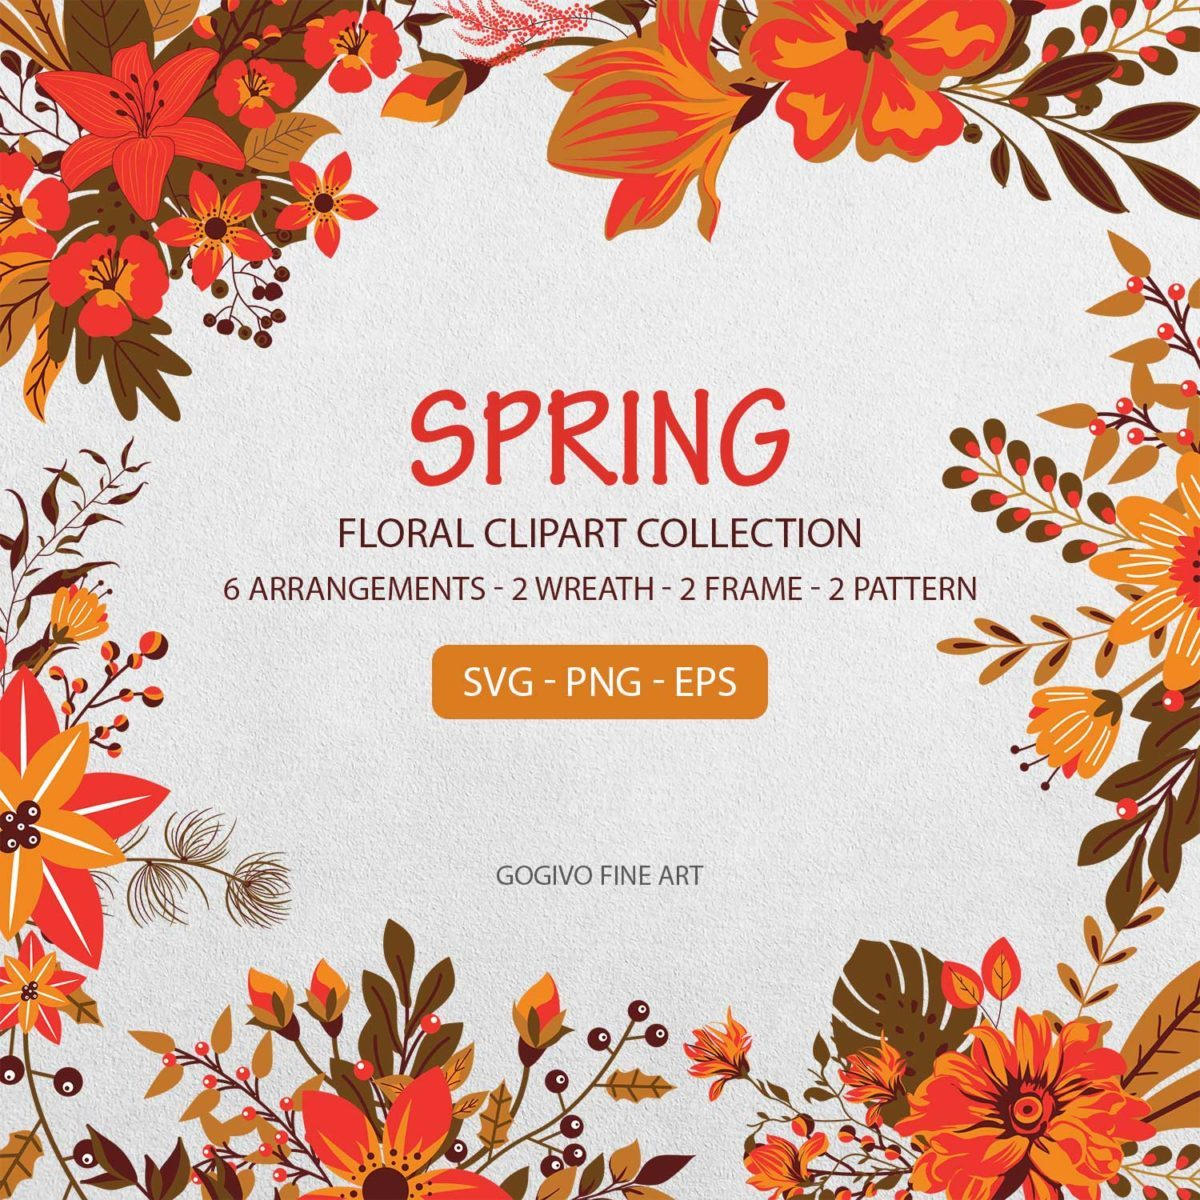 Spring Floral Clipart Collection